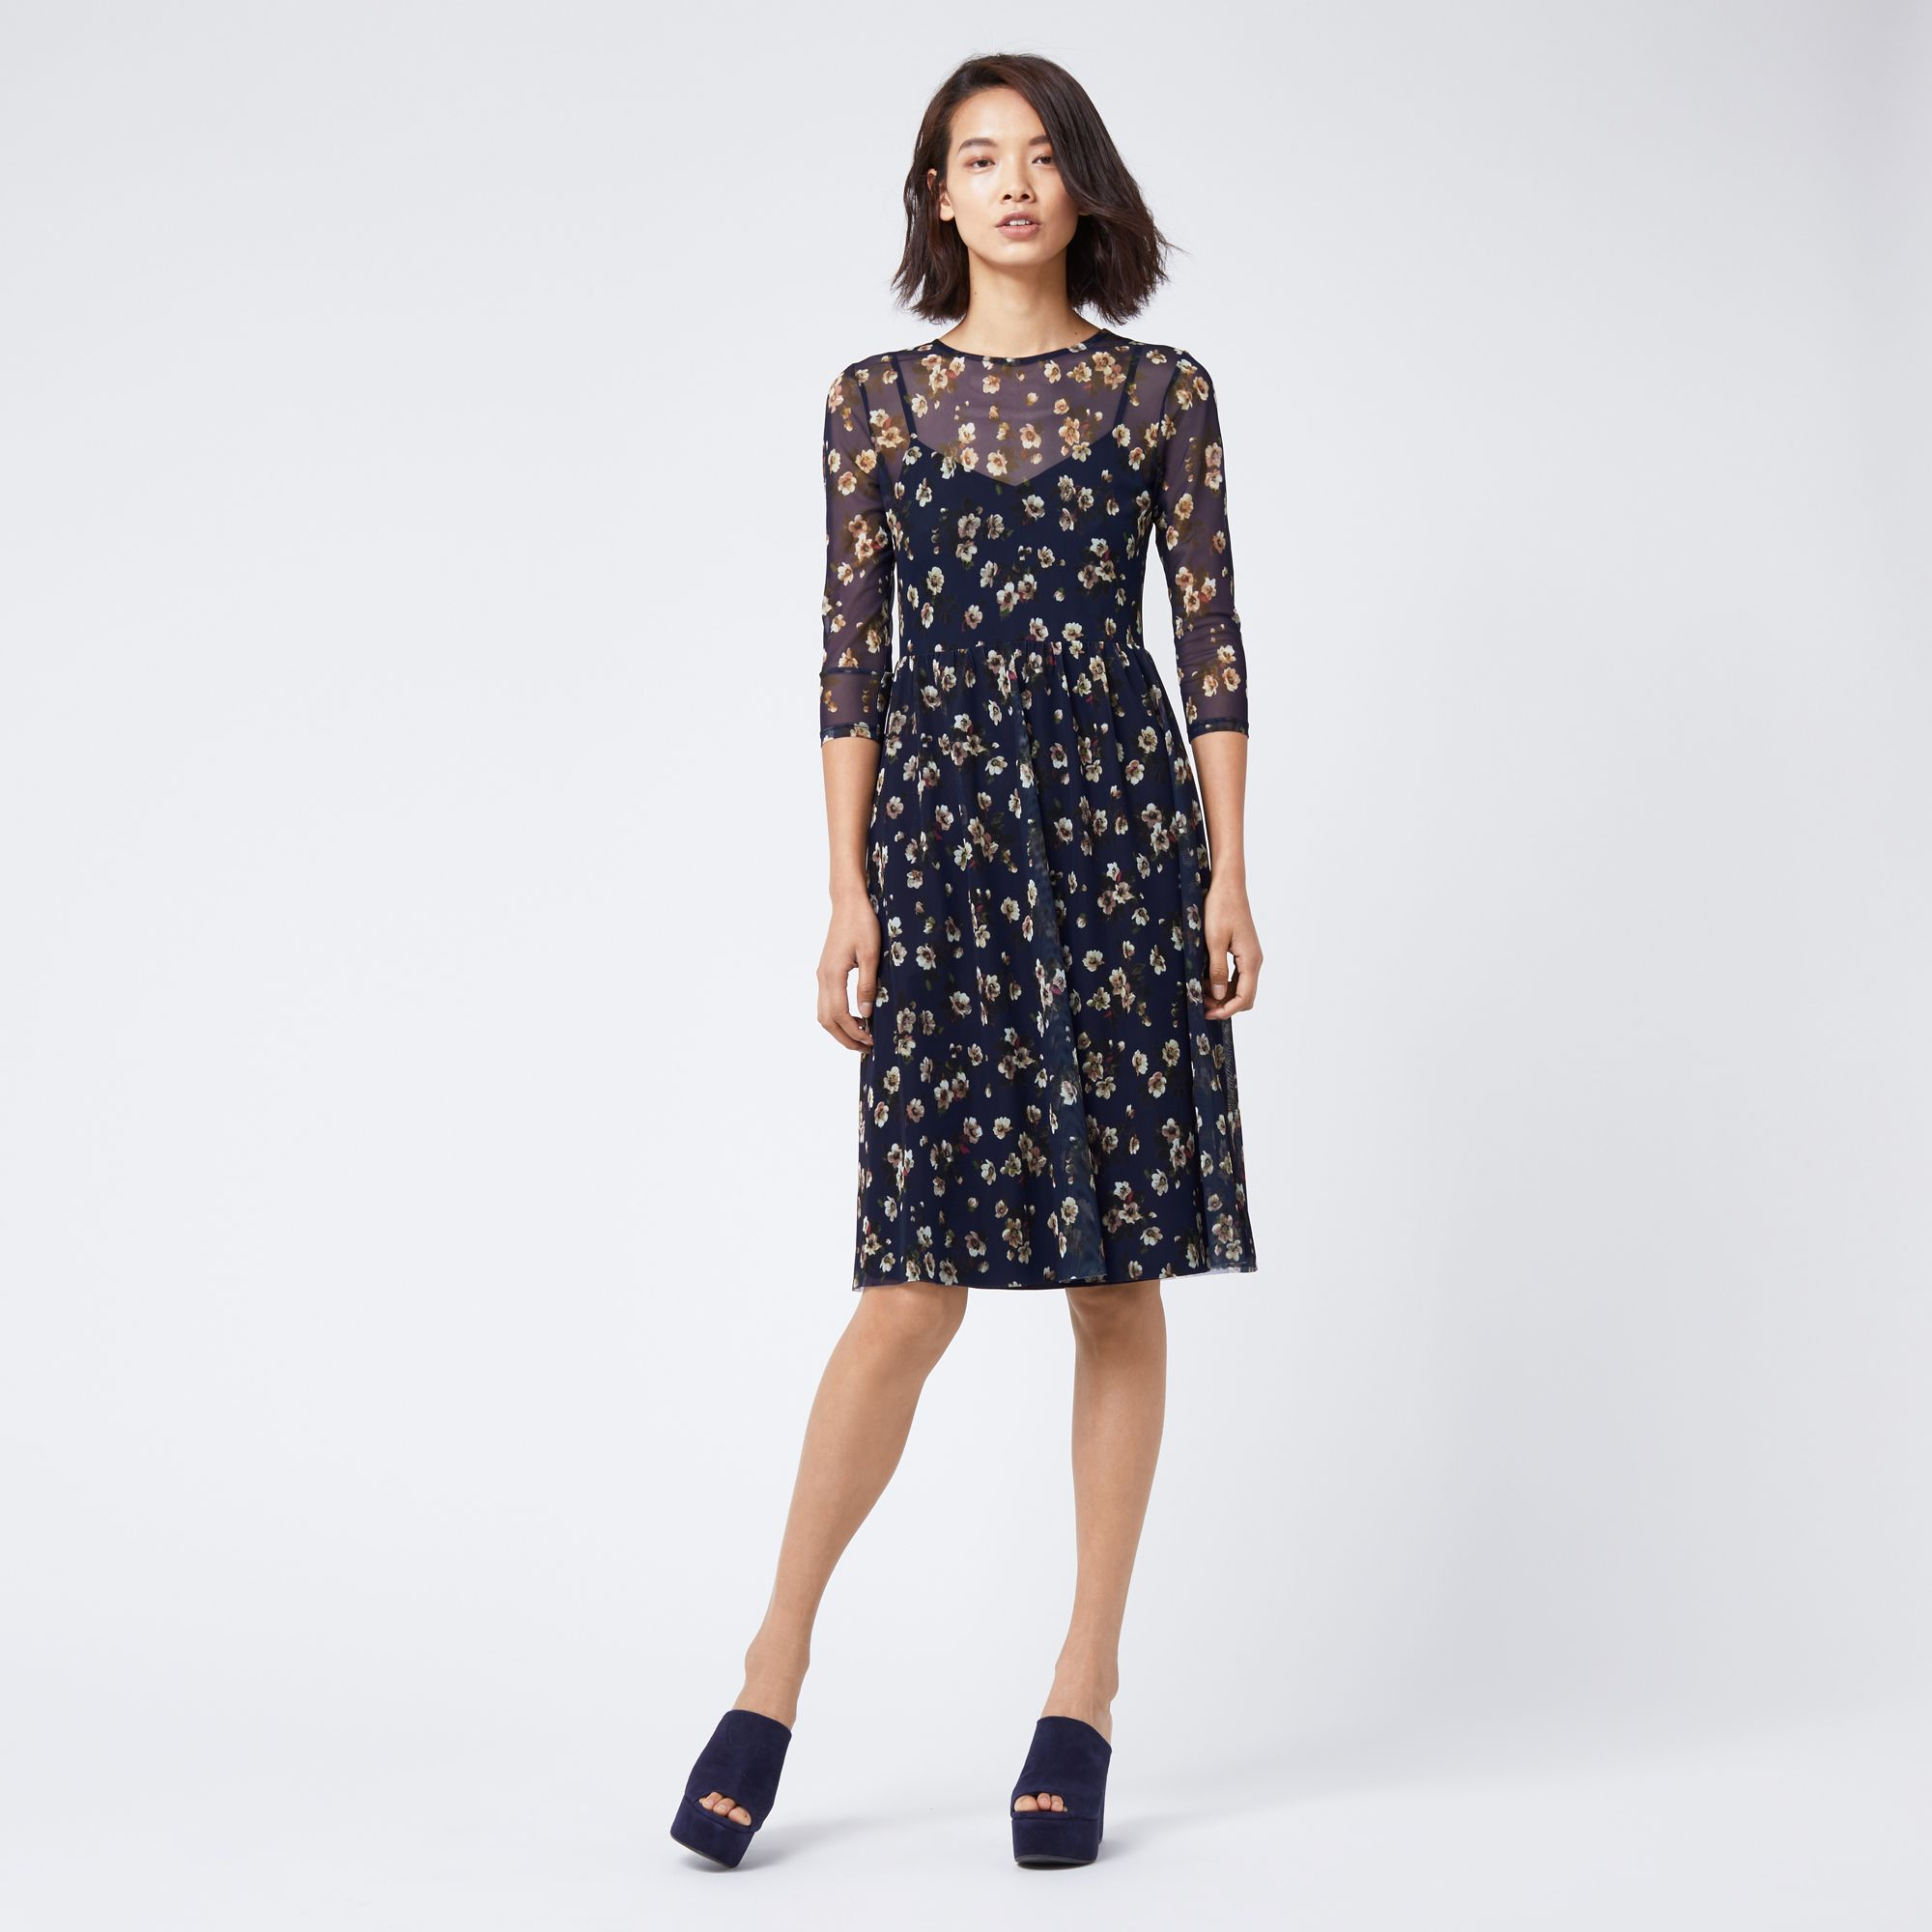 Floral print wedding guest dress  Warehouse MAE FLORAL PRINT MESH DRESS Multi   Wedding guest in